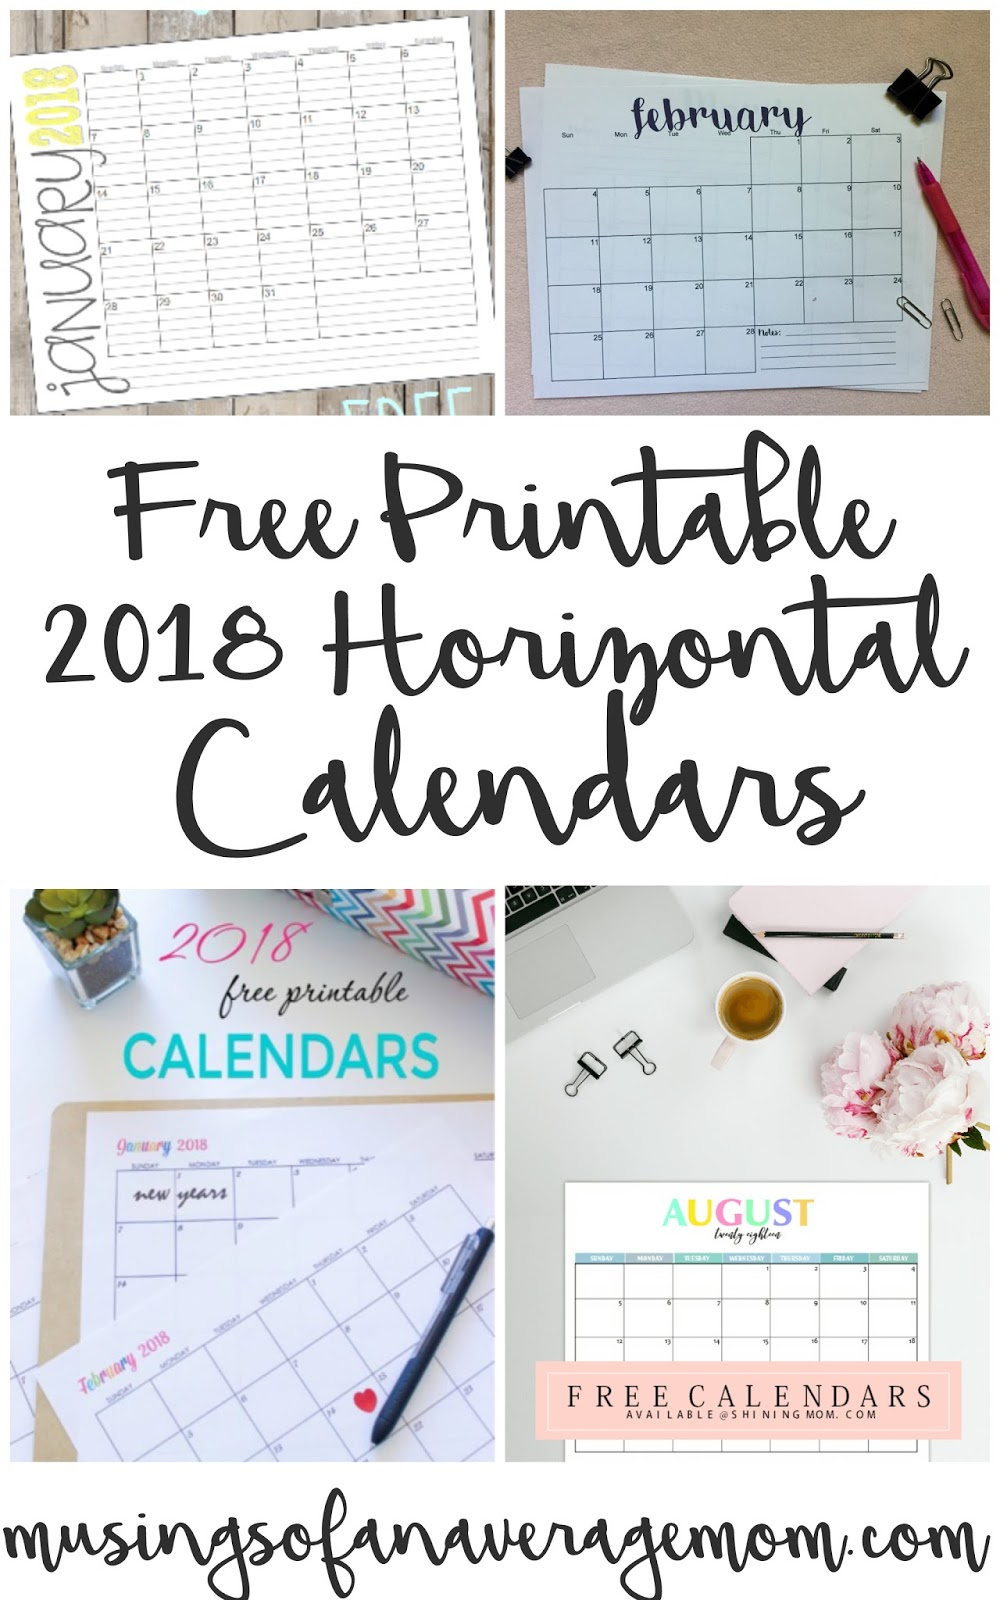 Musings of an Average Mom: 2018 Horizontal calendars